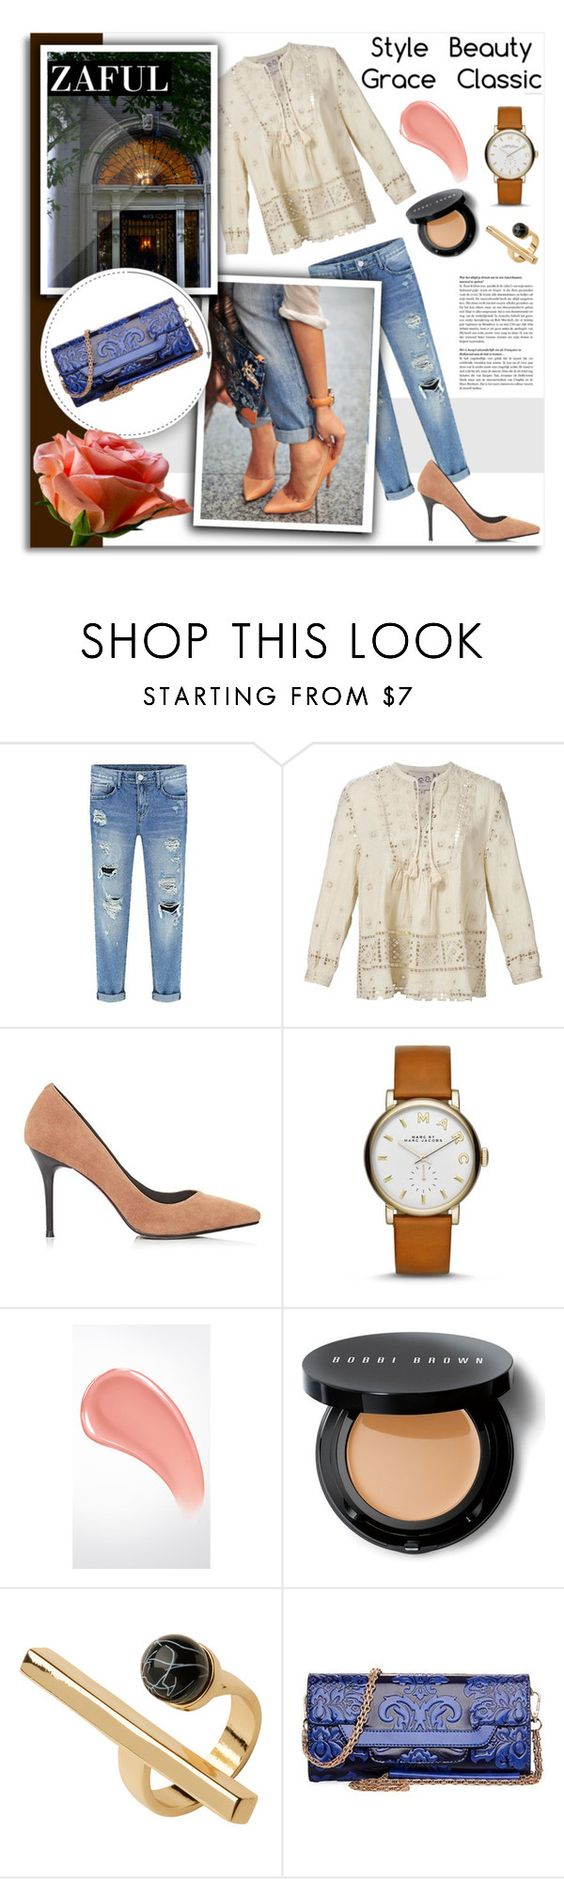 """""""11. www.zaful.com/?lkid=9900"""" by melissa-de-souza ❤ liked on Polyvore featuring Sea, New York, Marc Jacobs, Burberry, Bobbi Brown Cosmetics and Monki"""